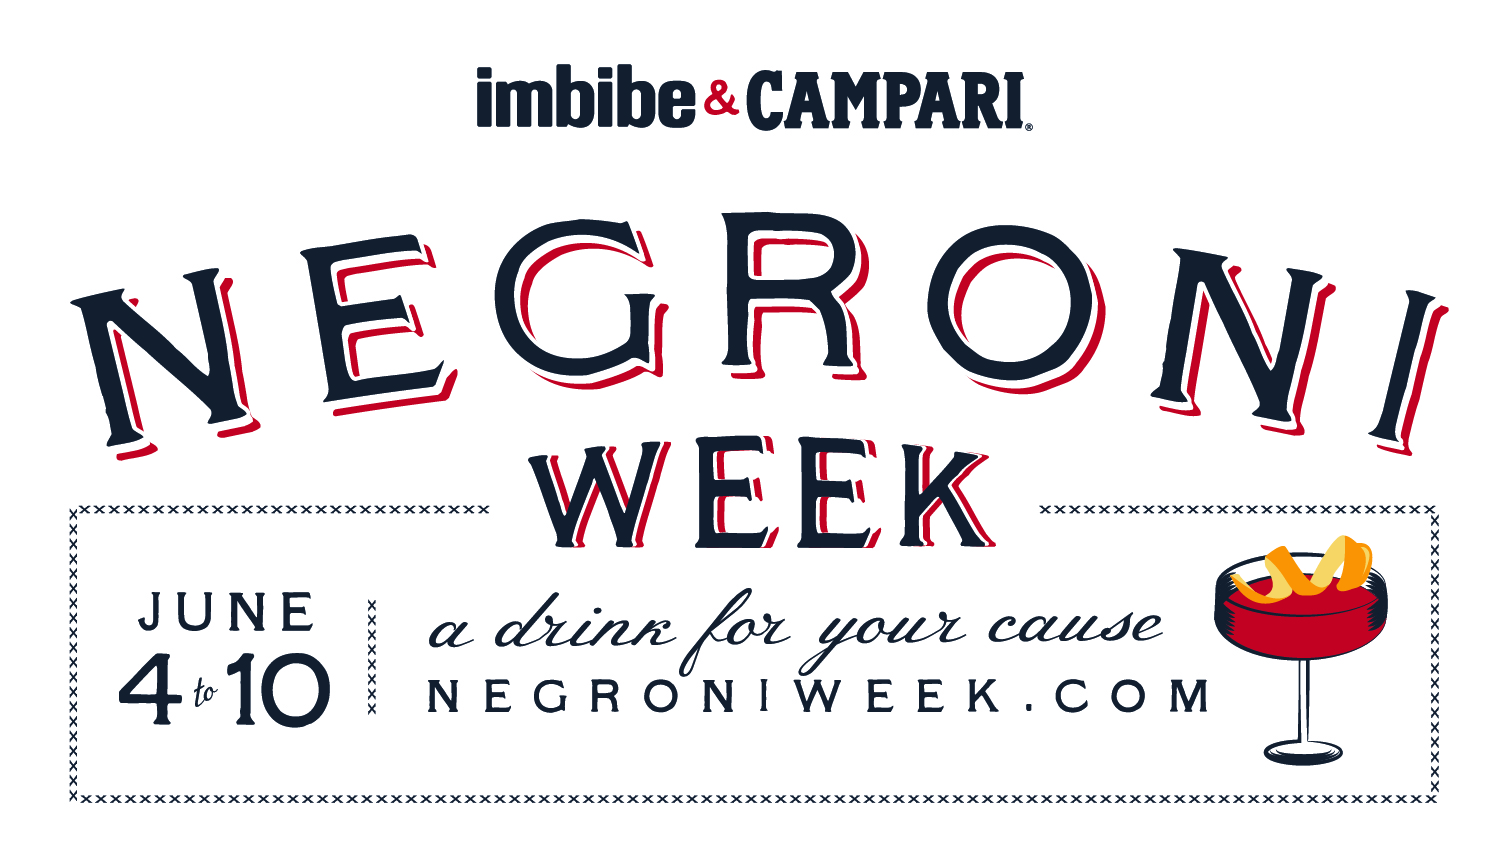 NegroniWeek2018_Horiz_LIGHT-color.jpg